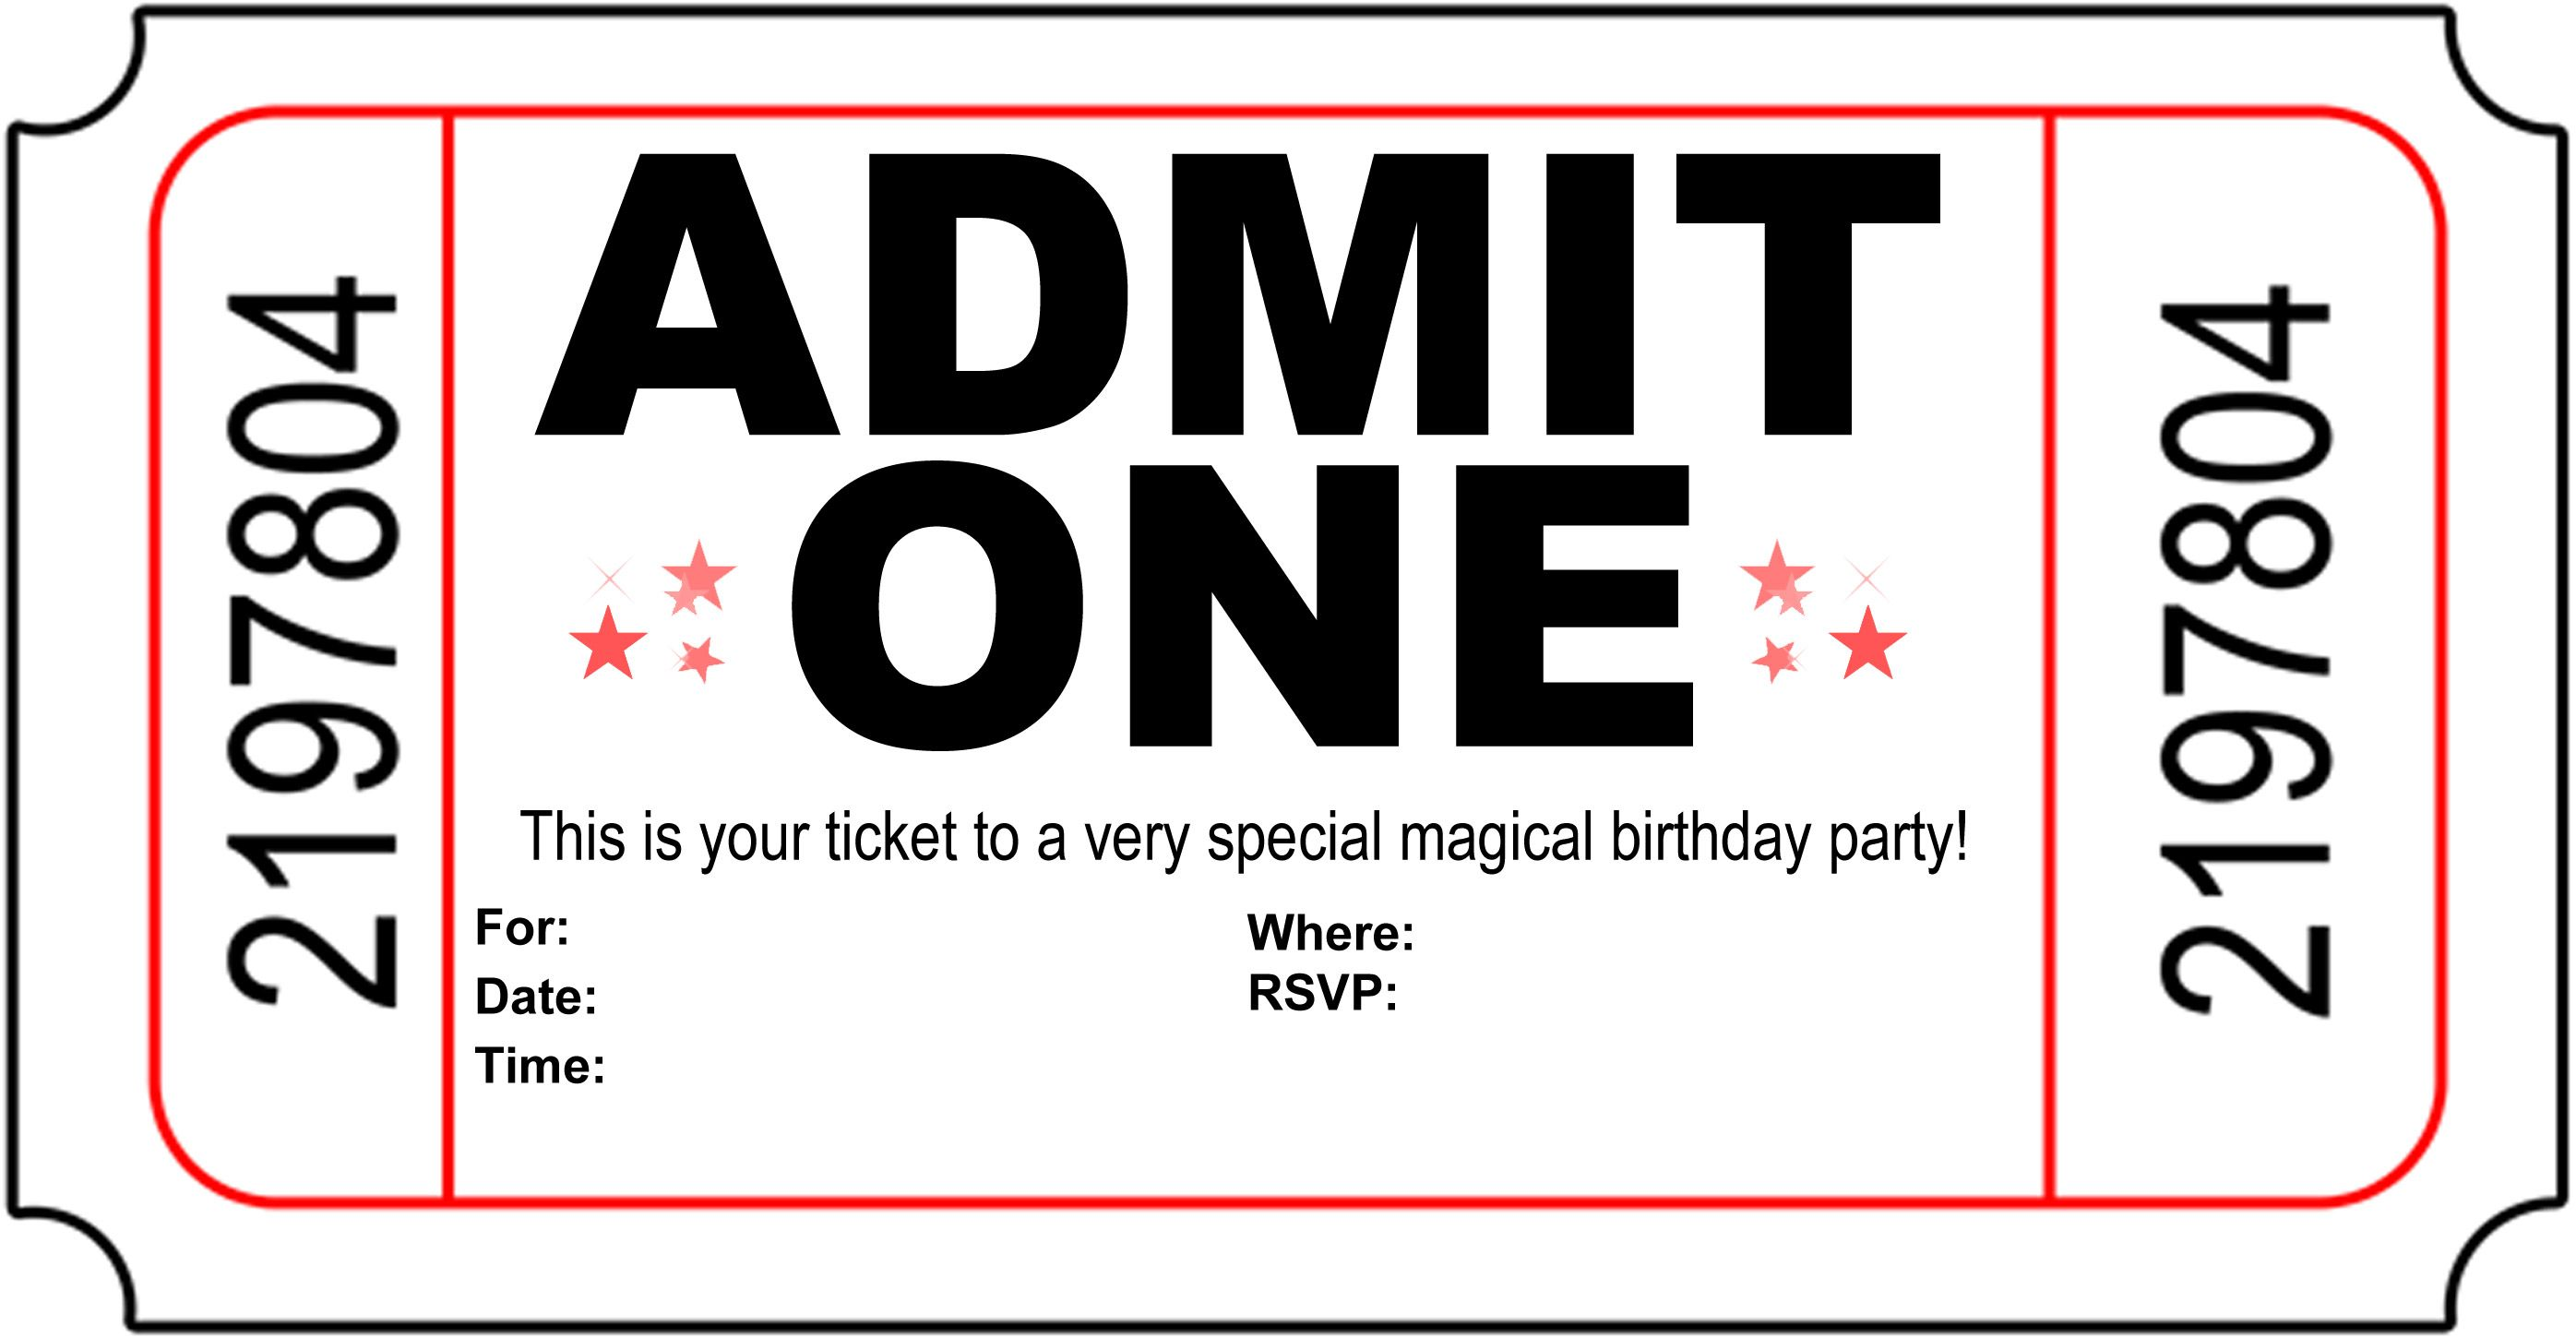 Movie Ticket Invitation Template Free Printable Free Printable Movie Ticket  Invite Video Tutorial On How To, Movie Ticket Birthday Invitations Printable  ...  Free Printable Movie Ticket Invitations